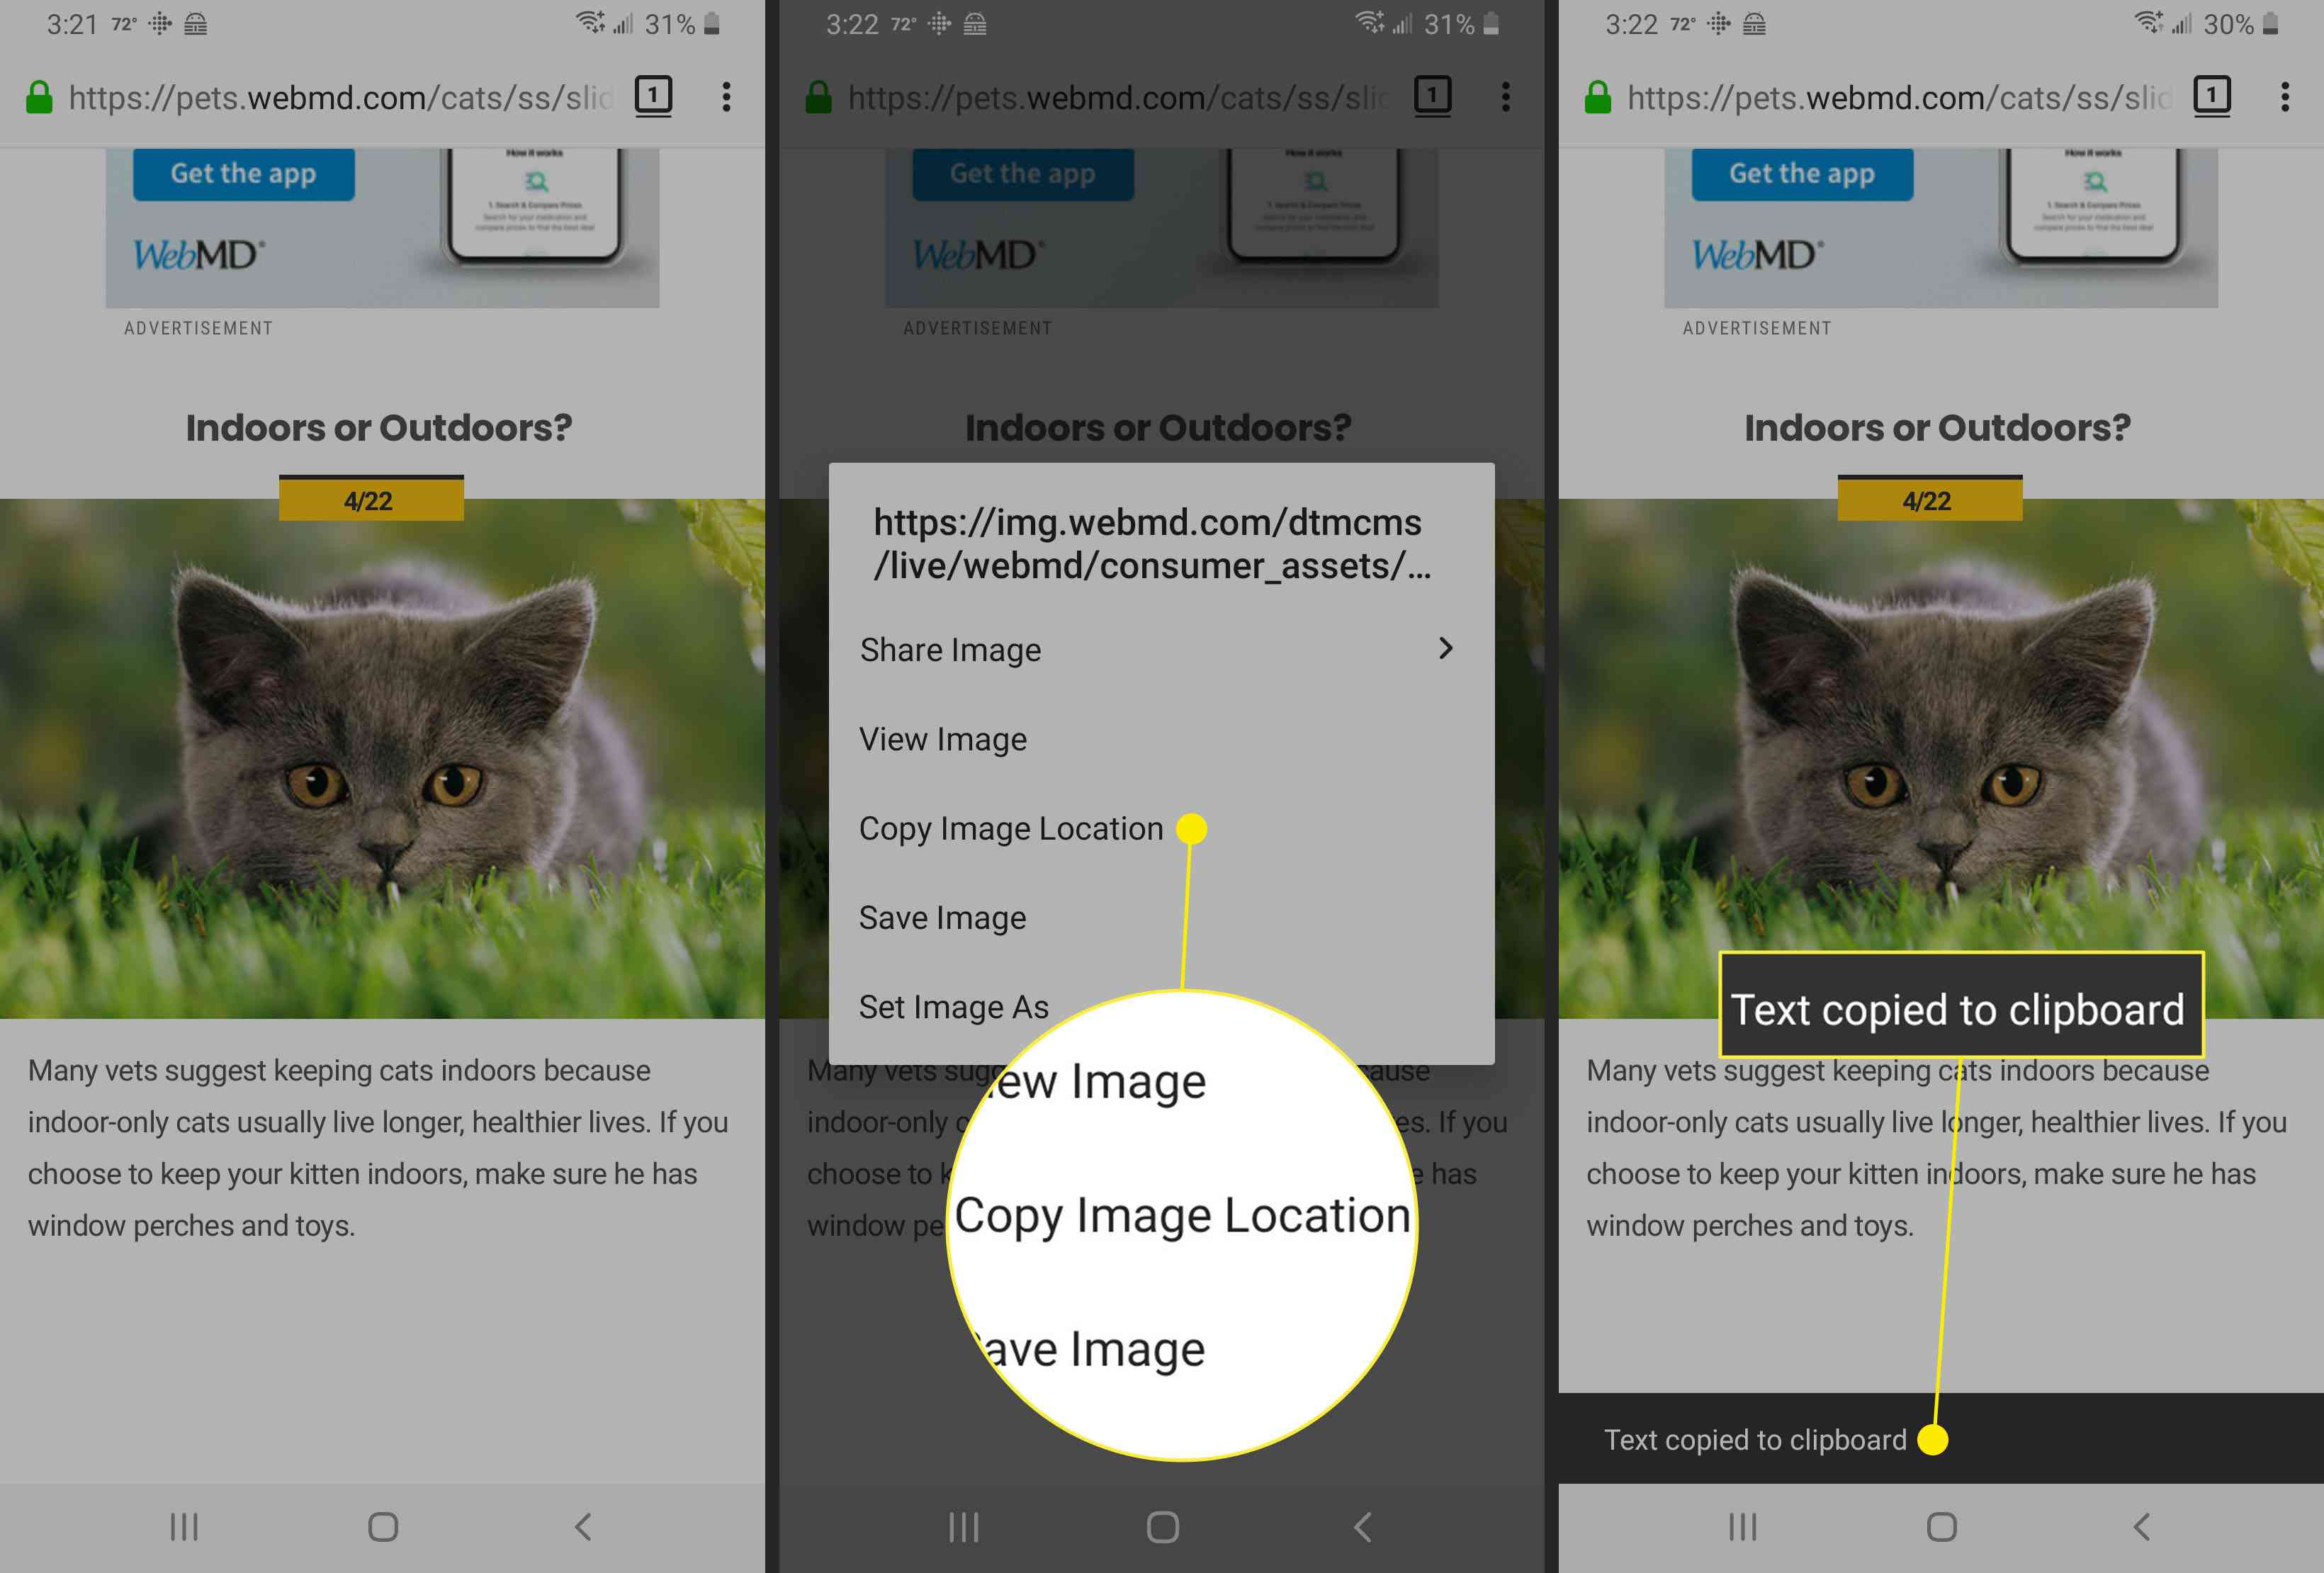 Saving an image location to the clipboard.